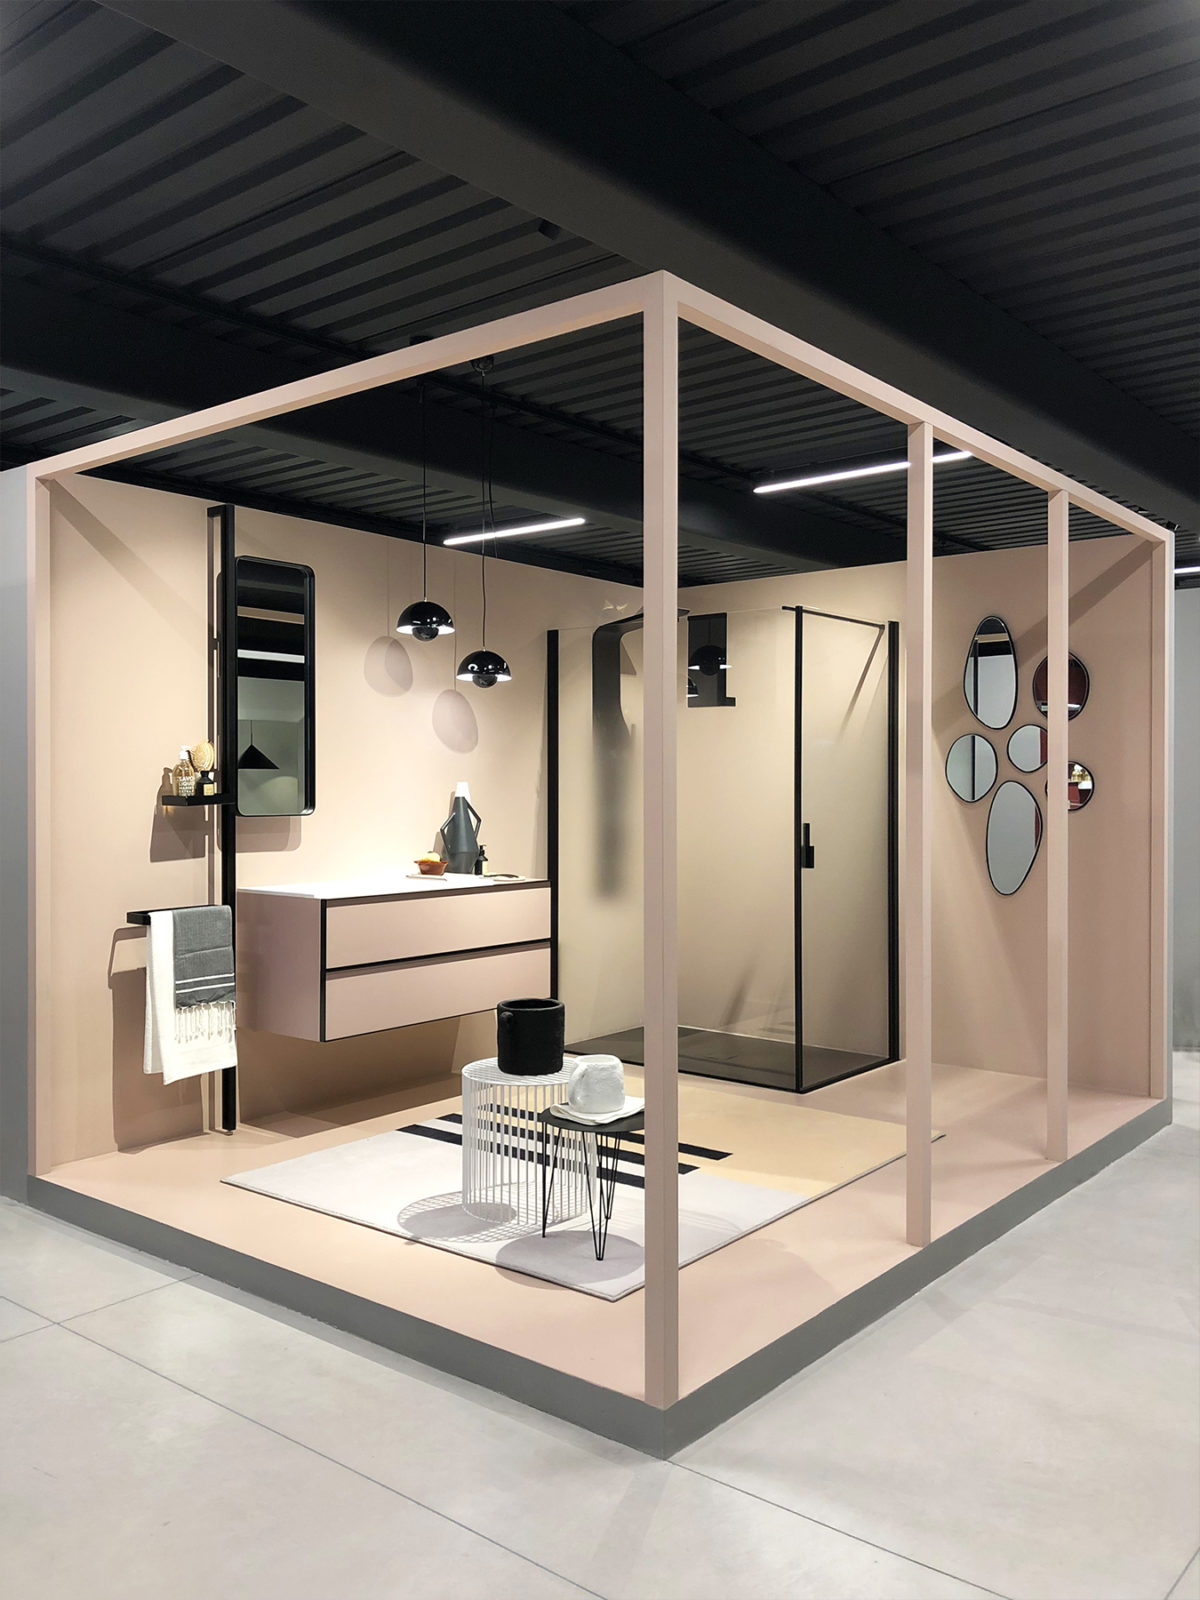 ARTESI-AGHA-ARDECO showroom 2019 2